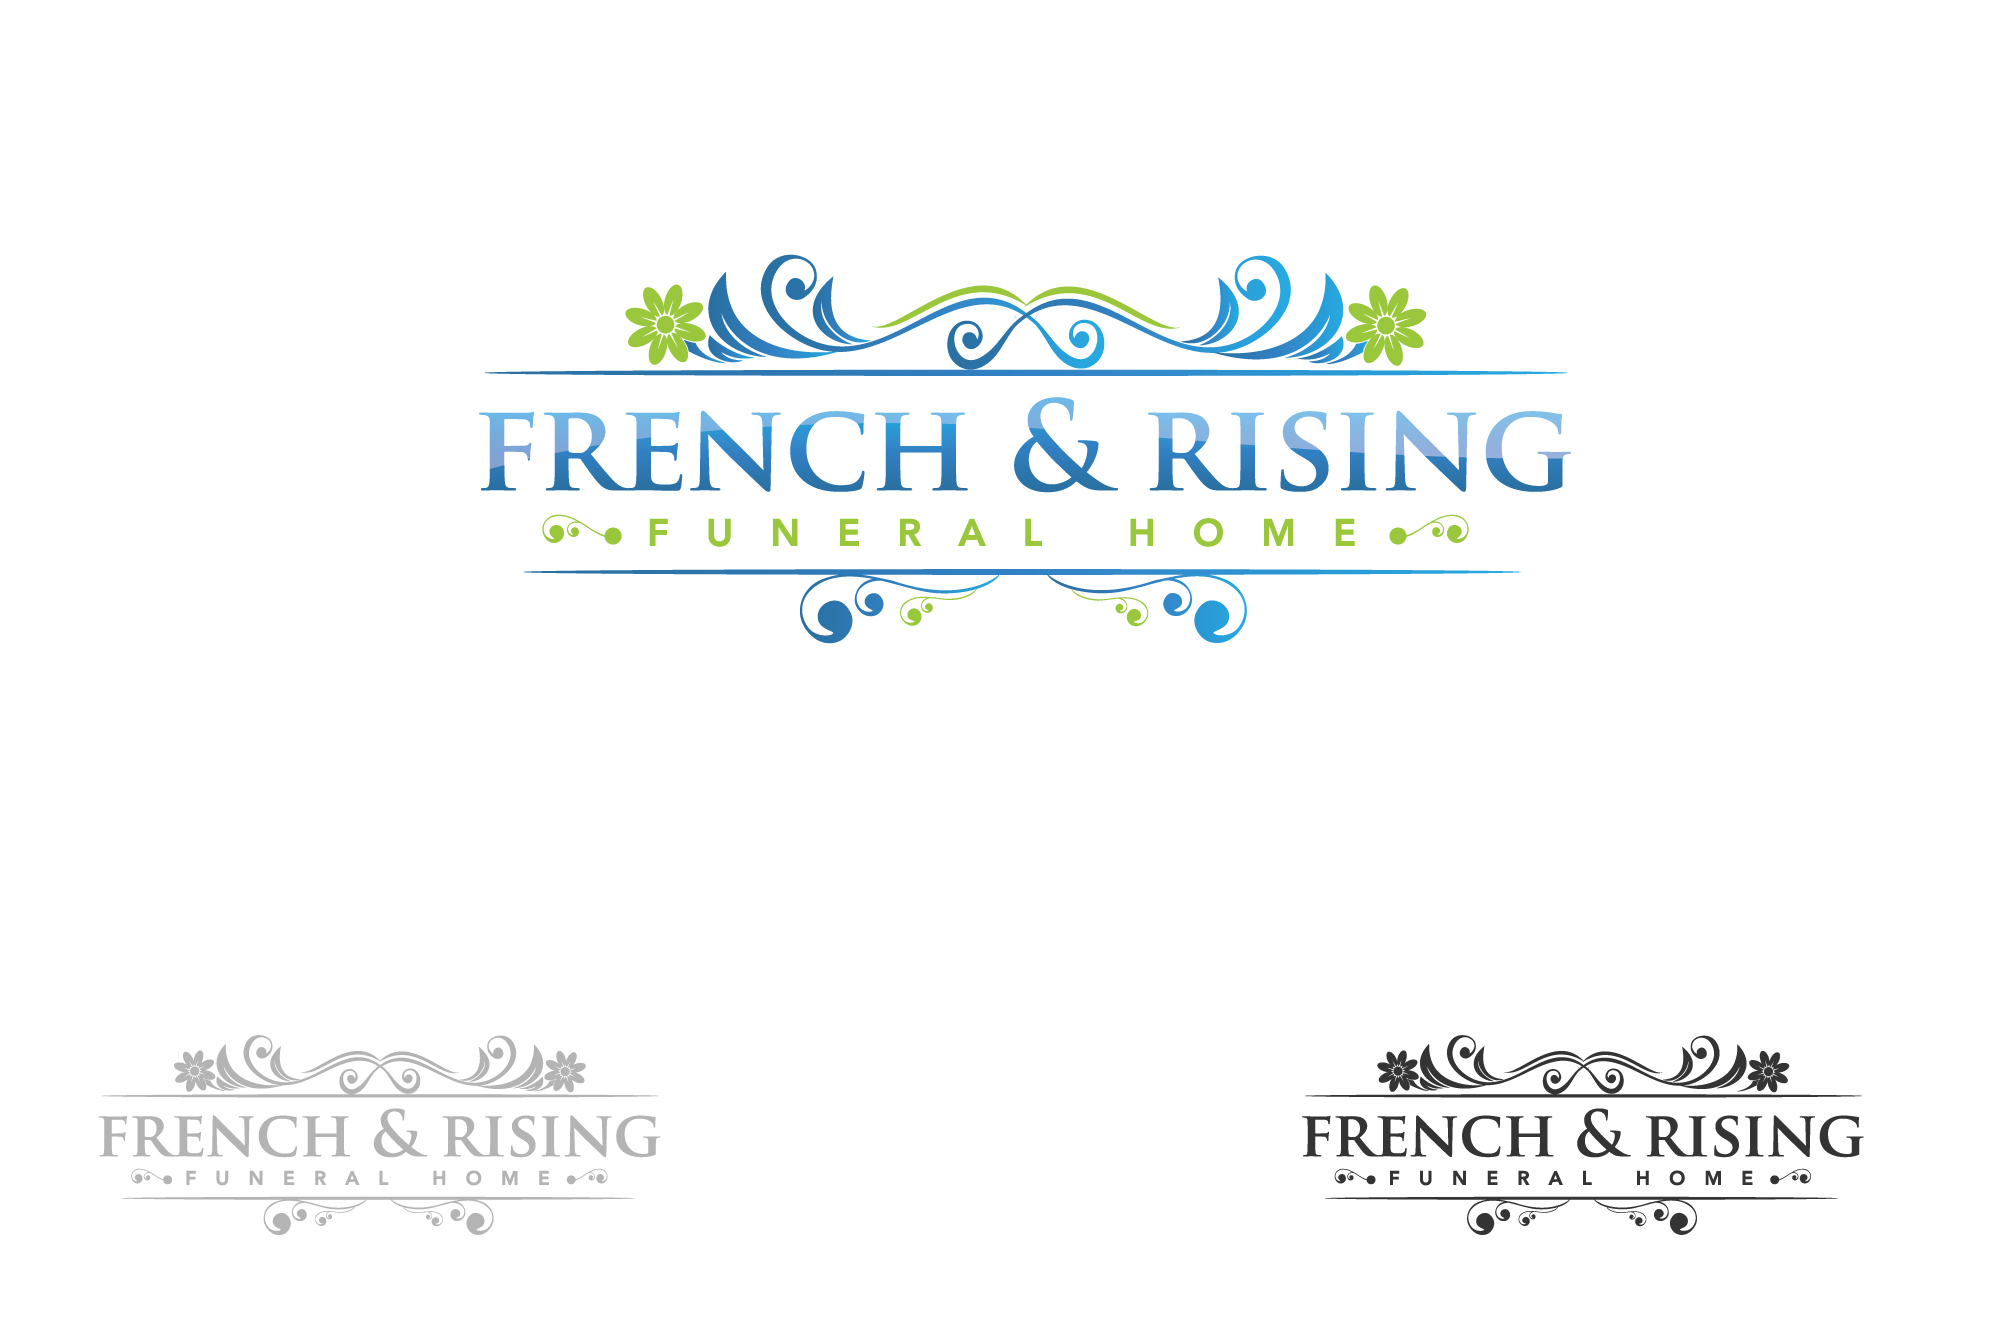 funeral home logos designs - home design